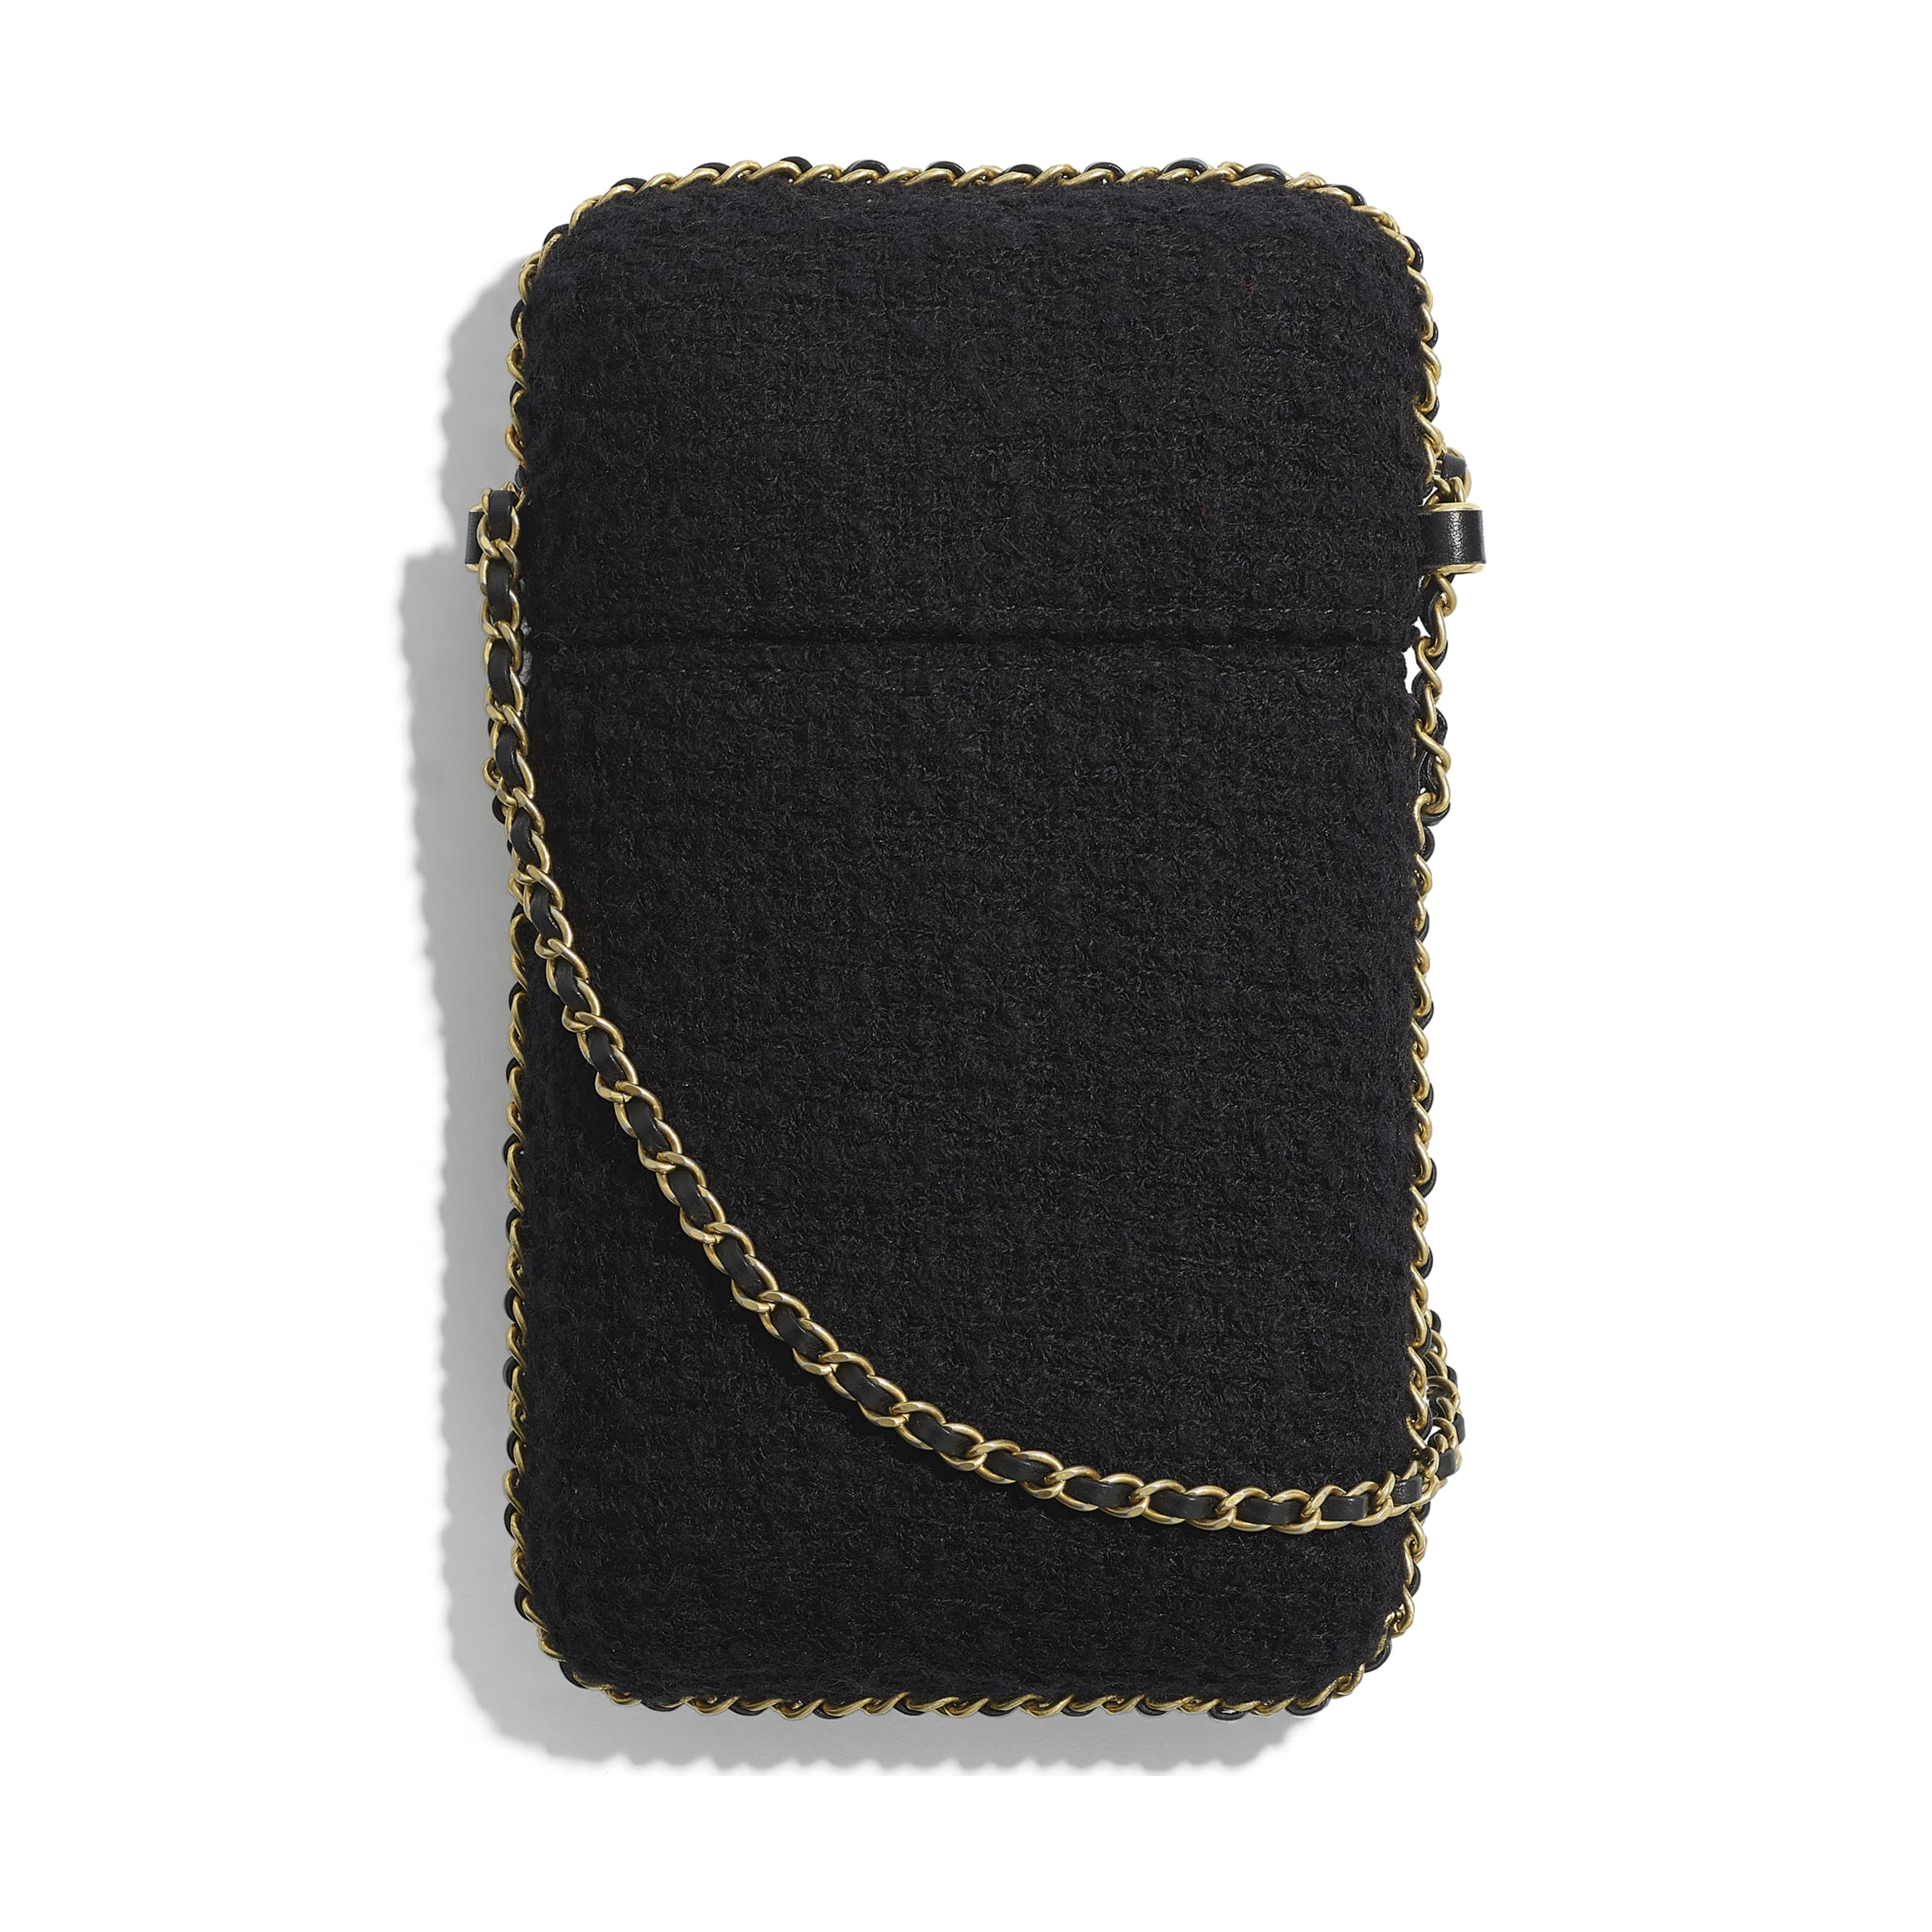 Clutch With Chain - Black & Gold - Tweed, Resin, Imitation Pearls, Diamante & Gold-Tone Metal - CHANEL - Alternative view - see standard sized version